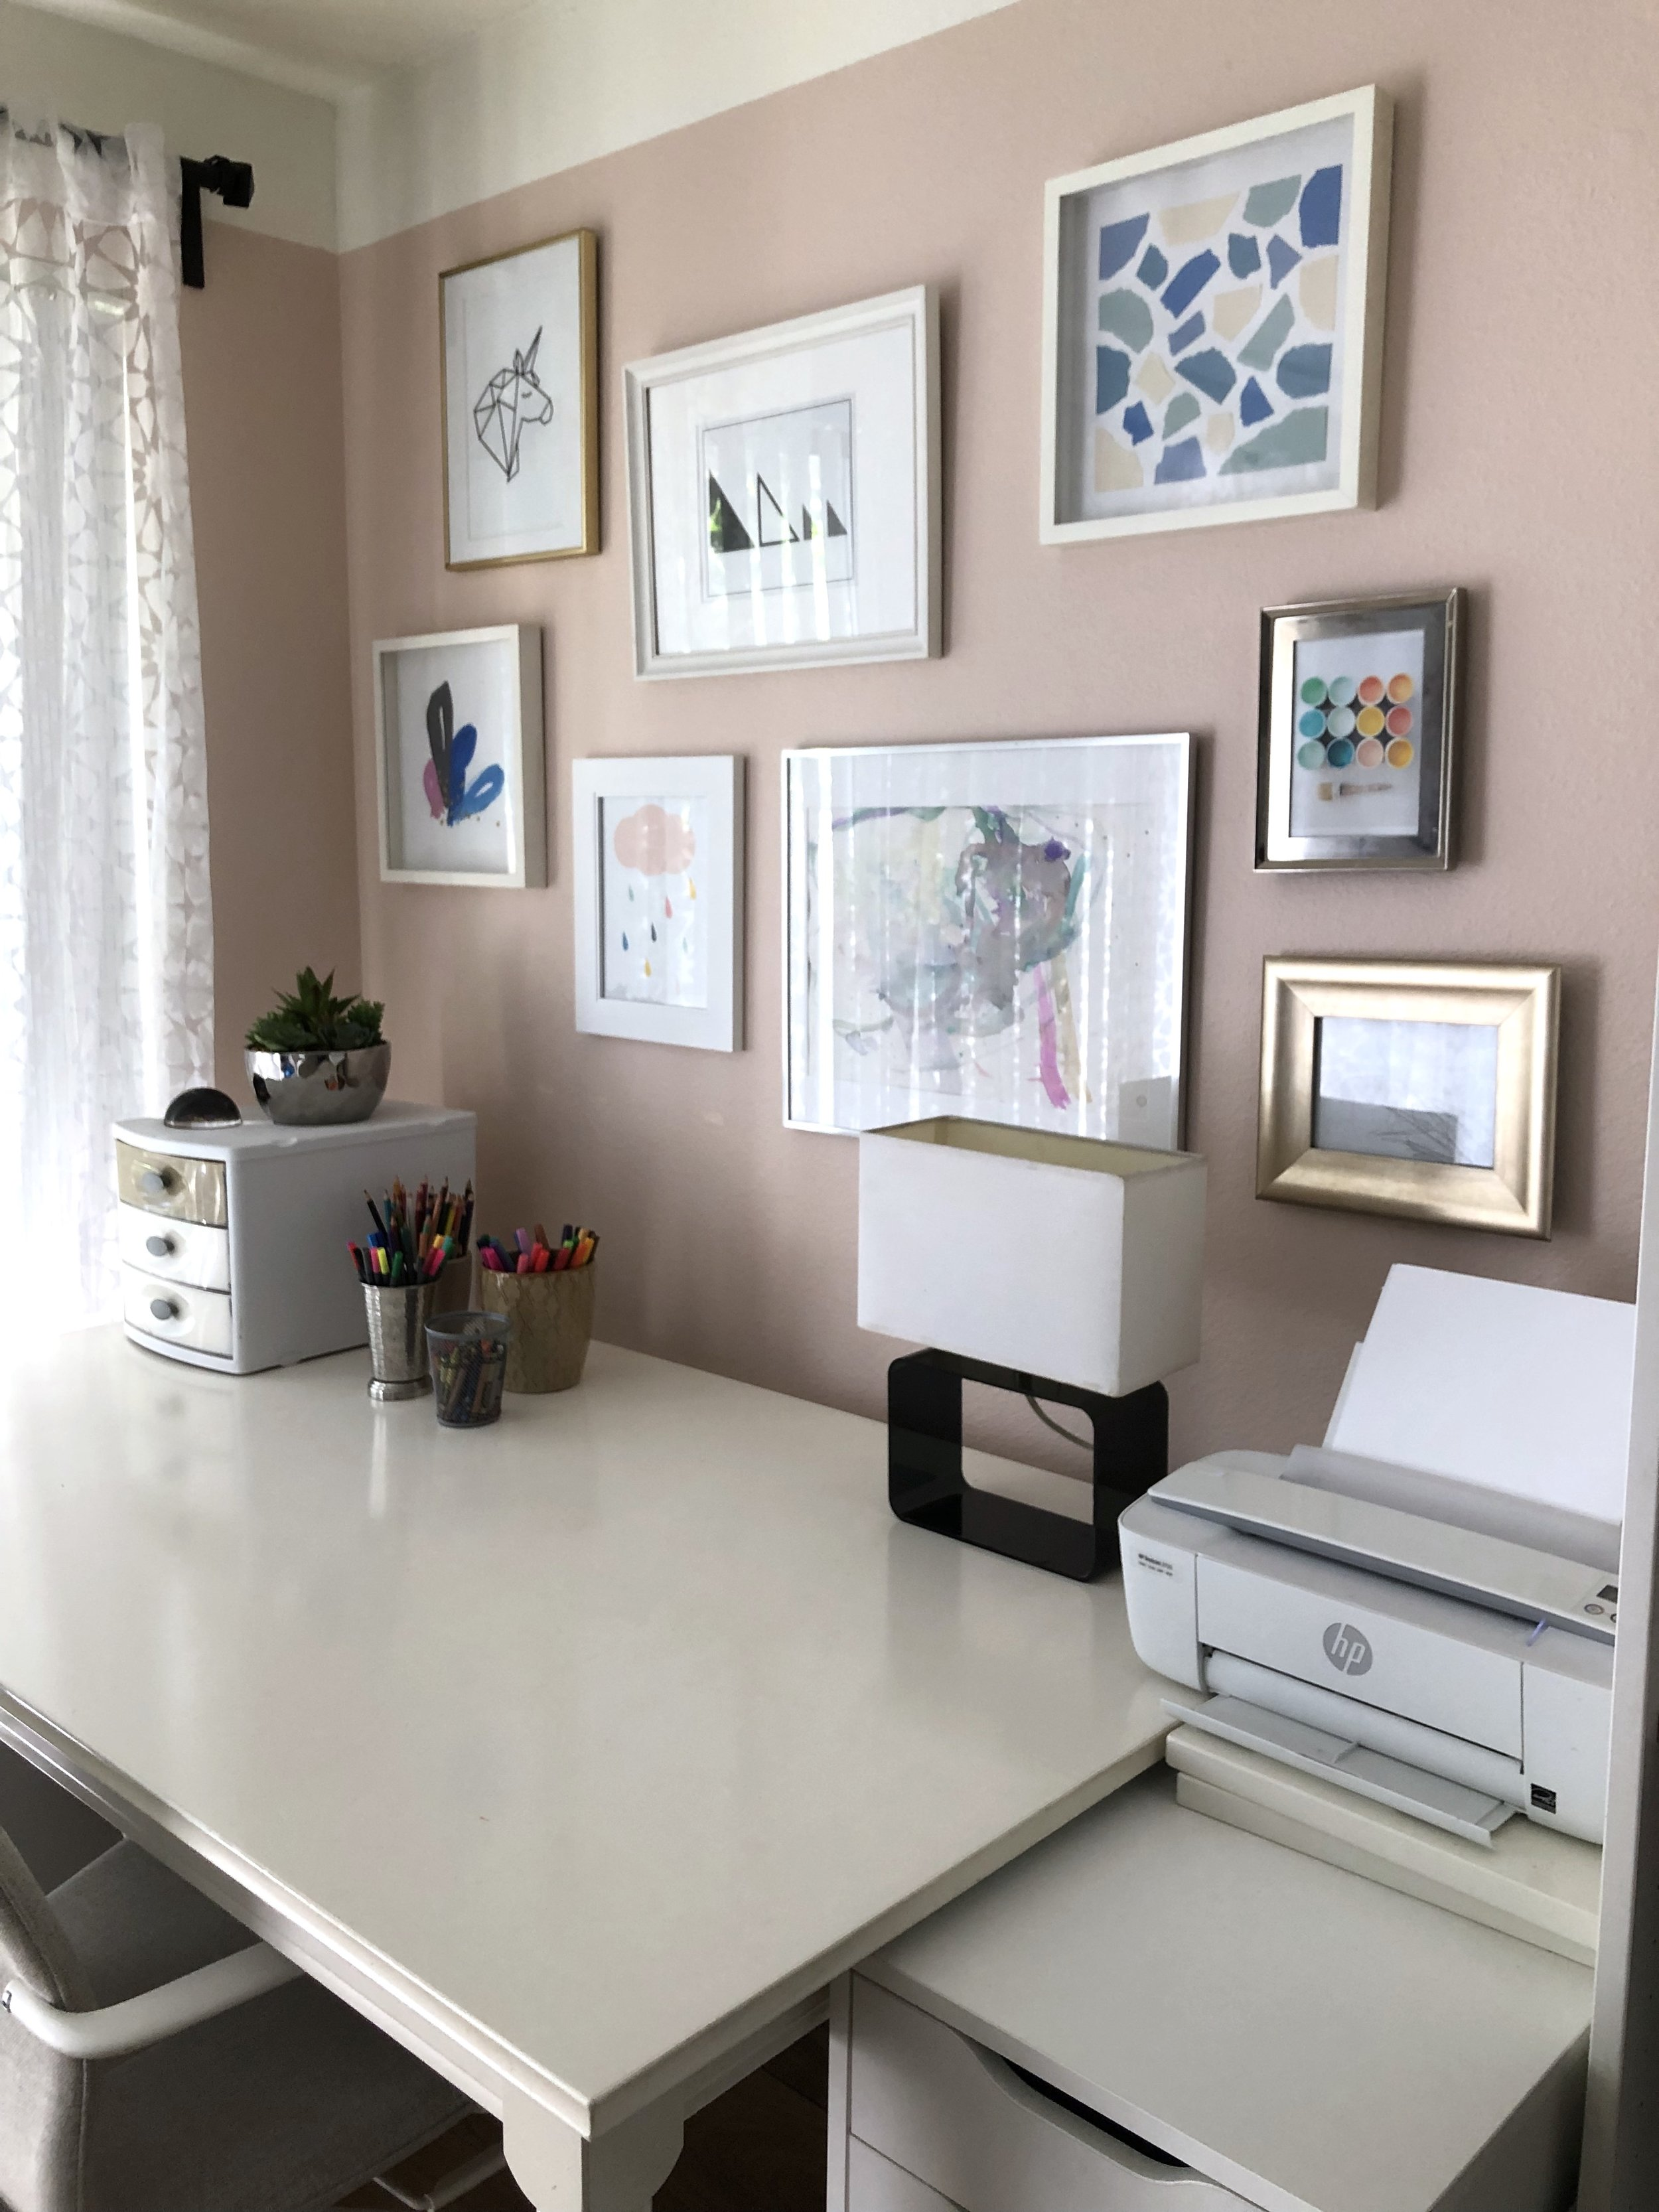 My toddler's large watercolor artwork was the inspiration for this entire collection. I purchased 2 pieces, my baby colored another, and I created the rest myself. The goal was to showcase a variety of mediums with a color story to unite them altogether.